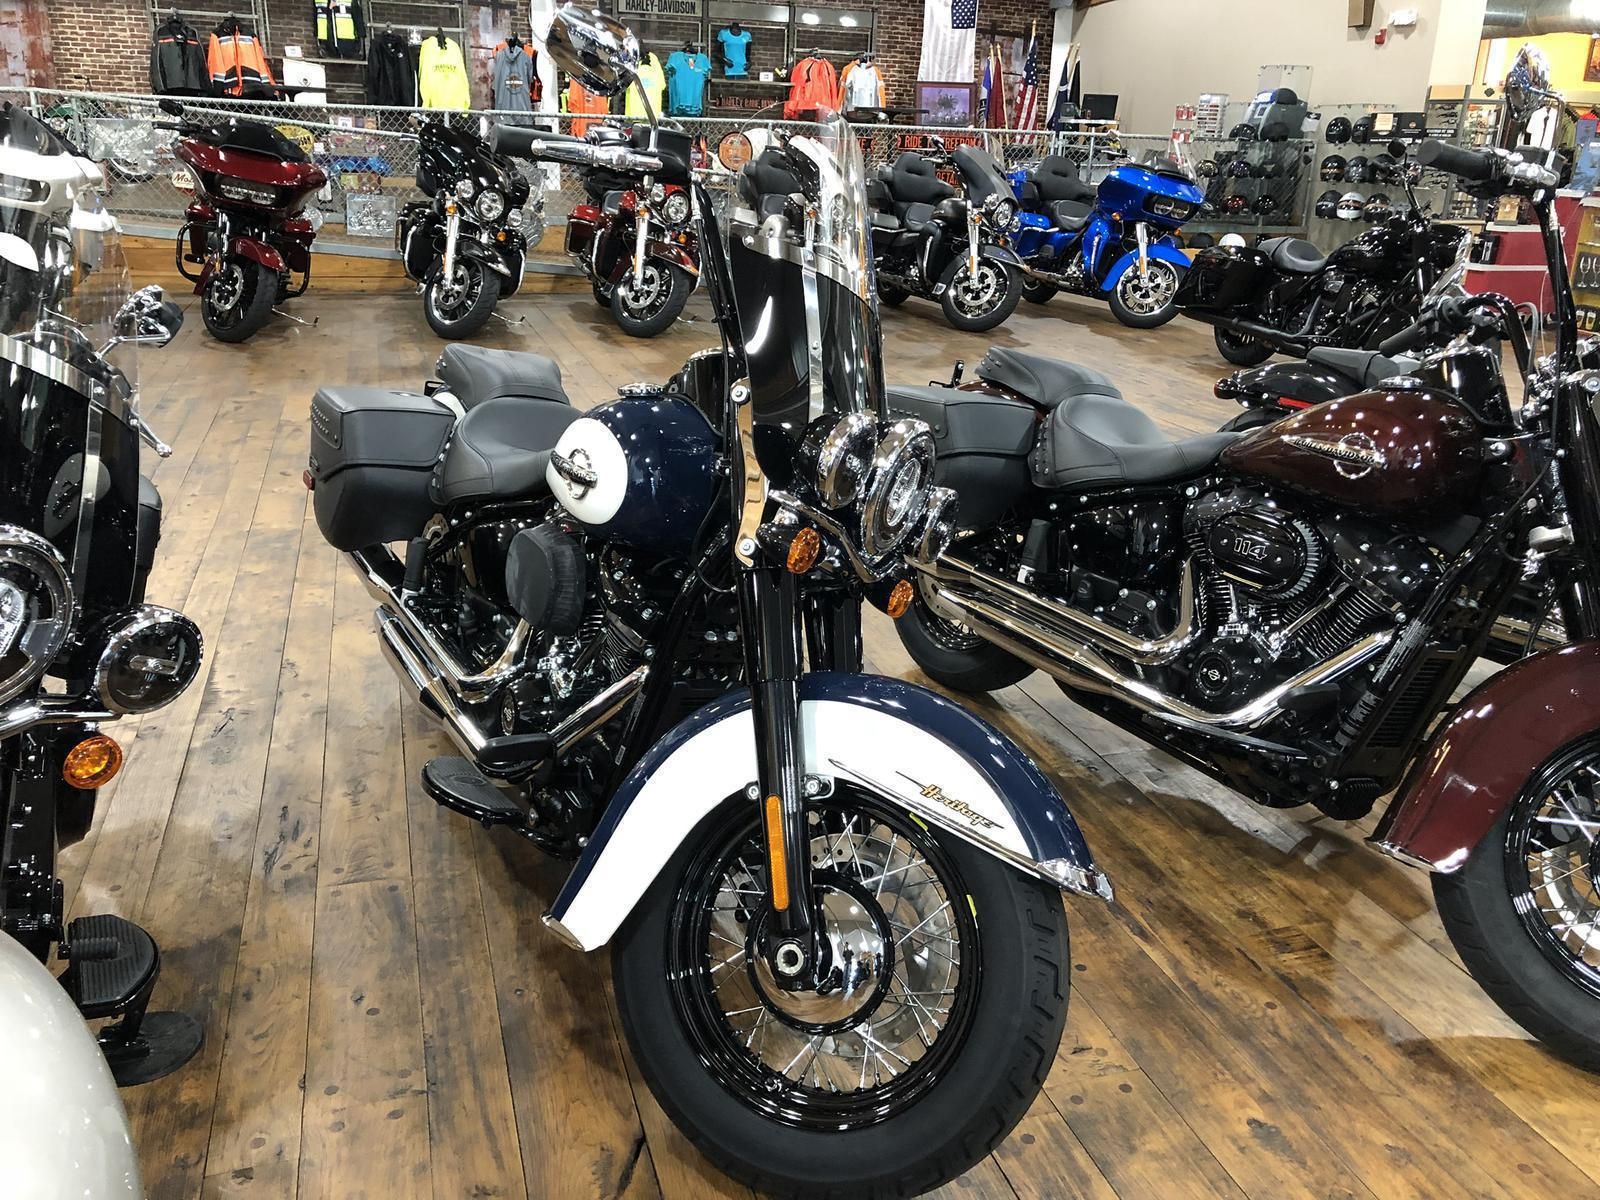 2019 Harley Davidson Heritage Classic 114 For Sale In Charleston Softail Item Locationid 16420